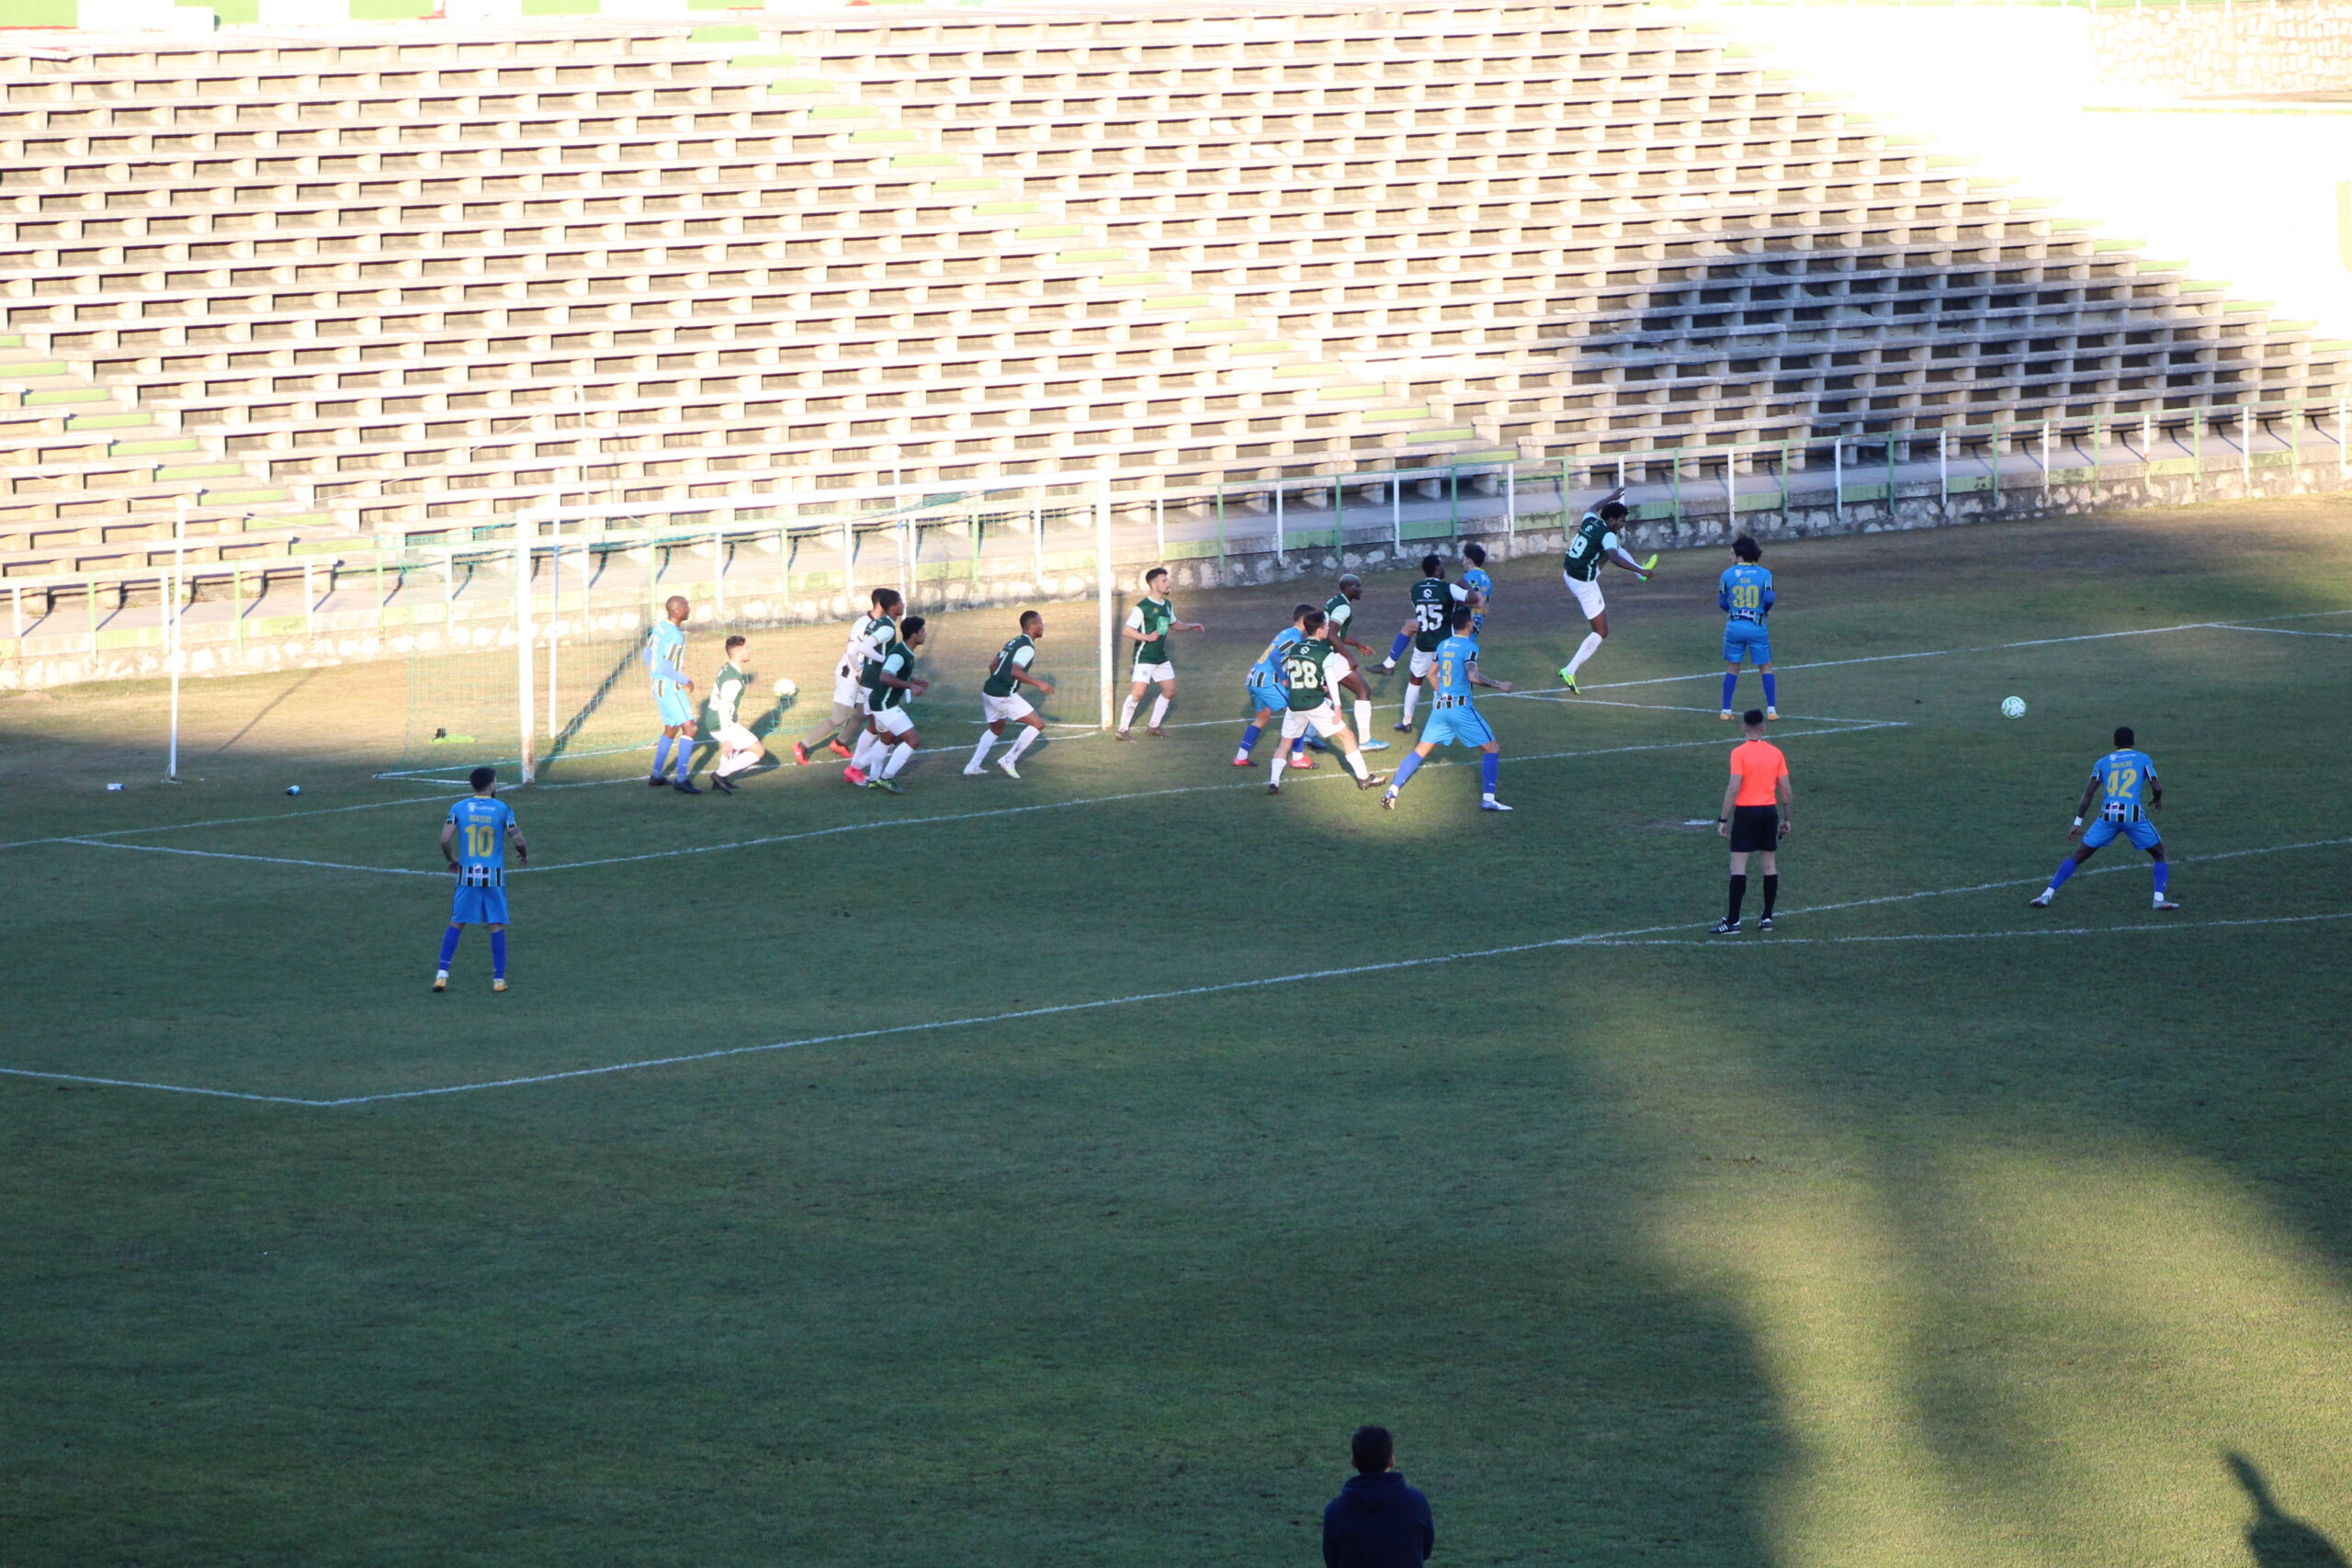 GD Fabril 0-2 Real SC